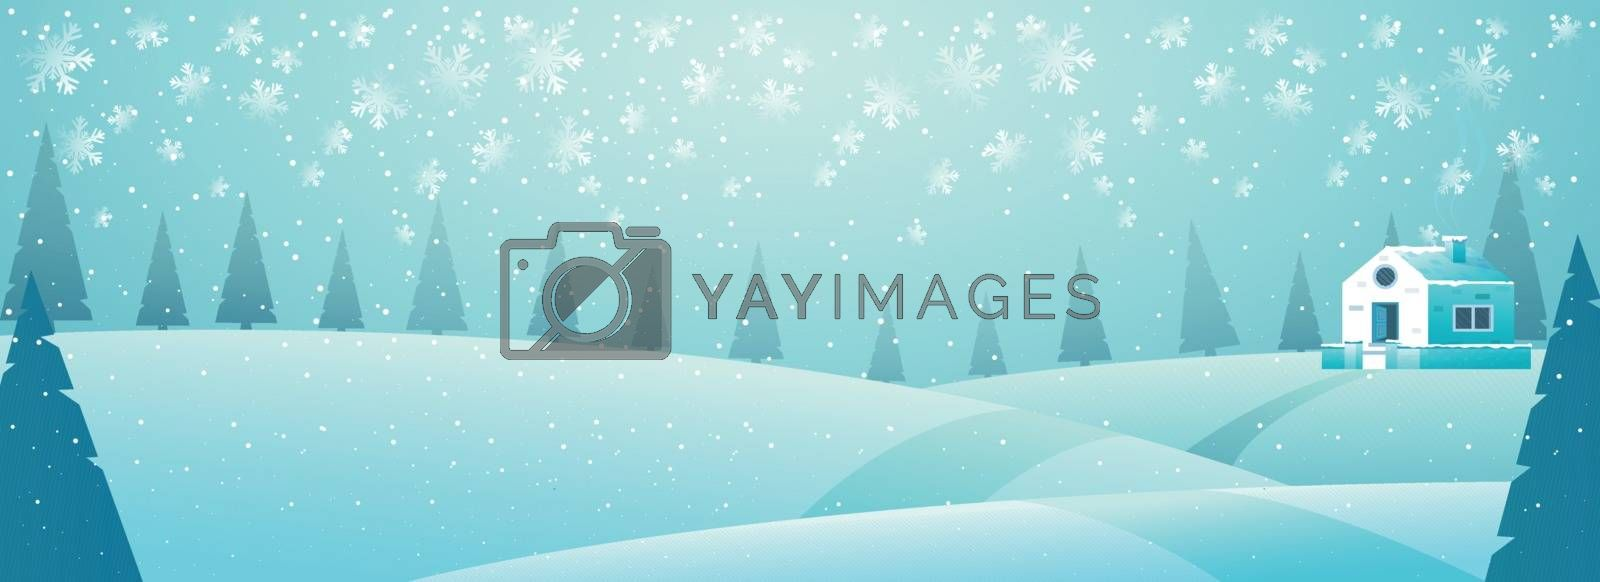 Winter landscape background with season trees and house for winter vacation concept. Banner or header design.